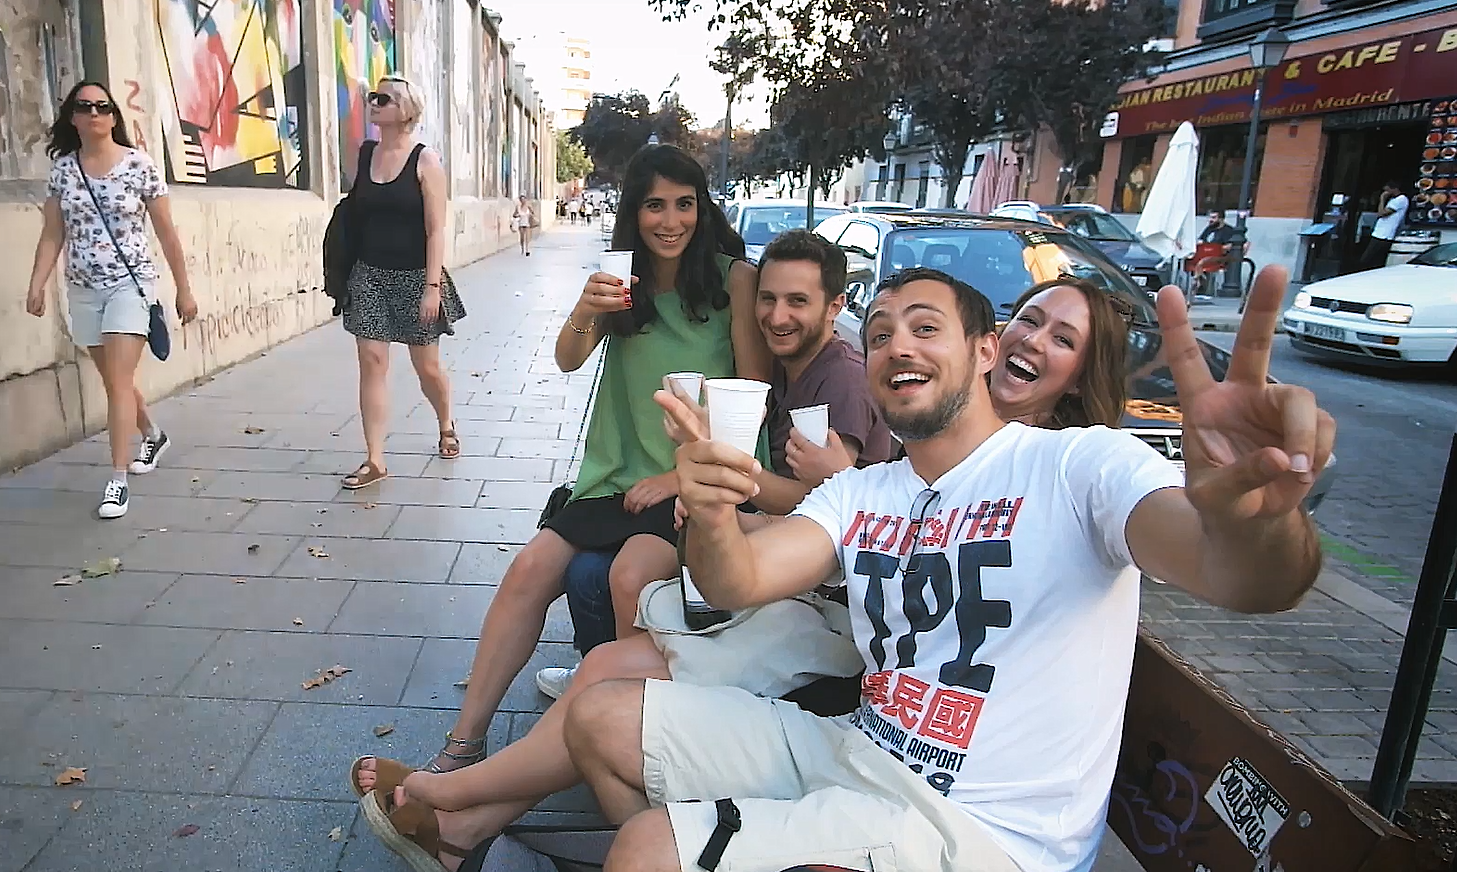 Freinds drinking in the streets of Madrid cinemagraph by Kassisien